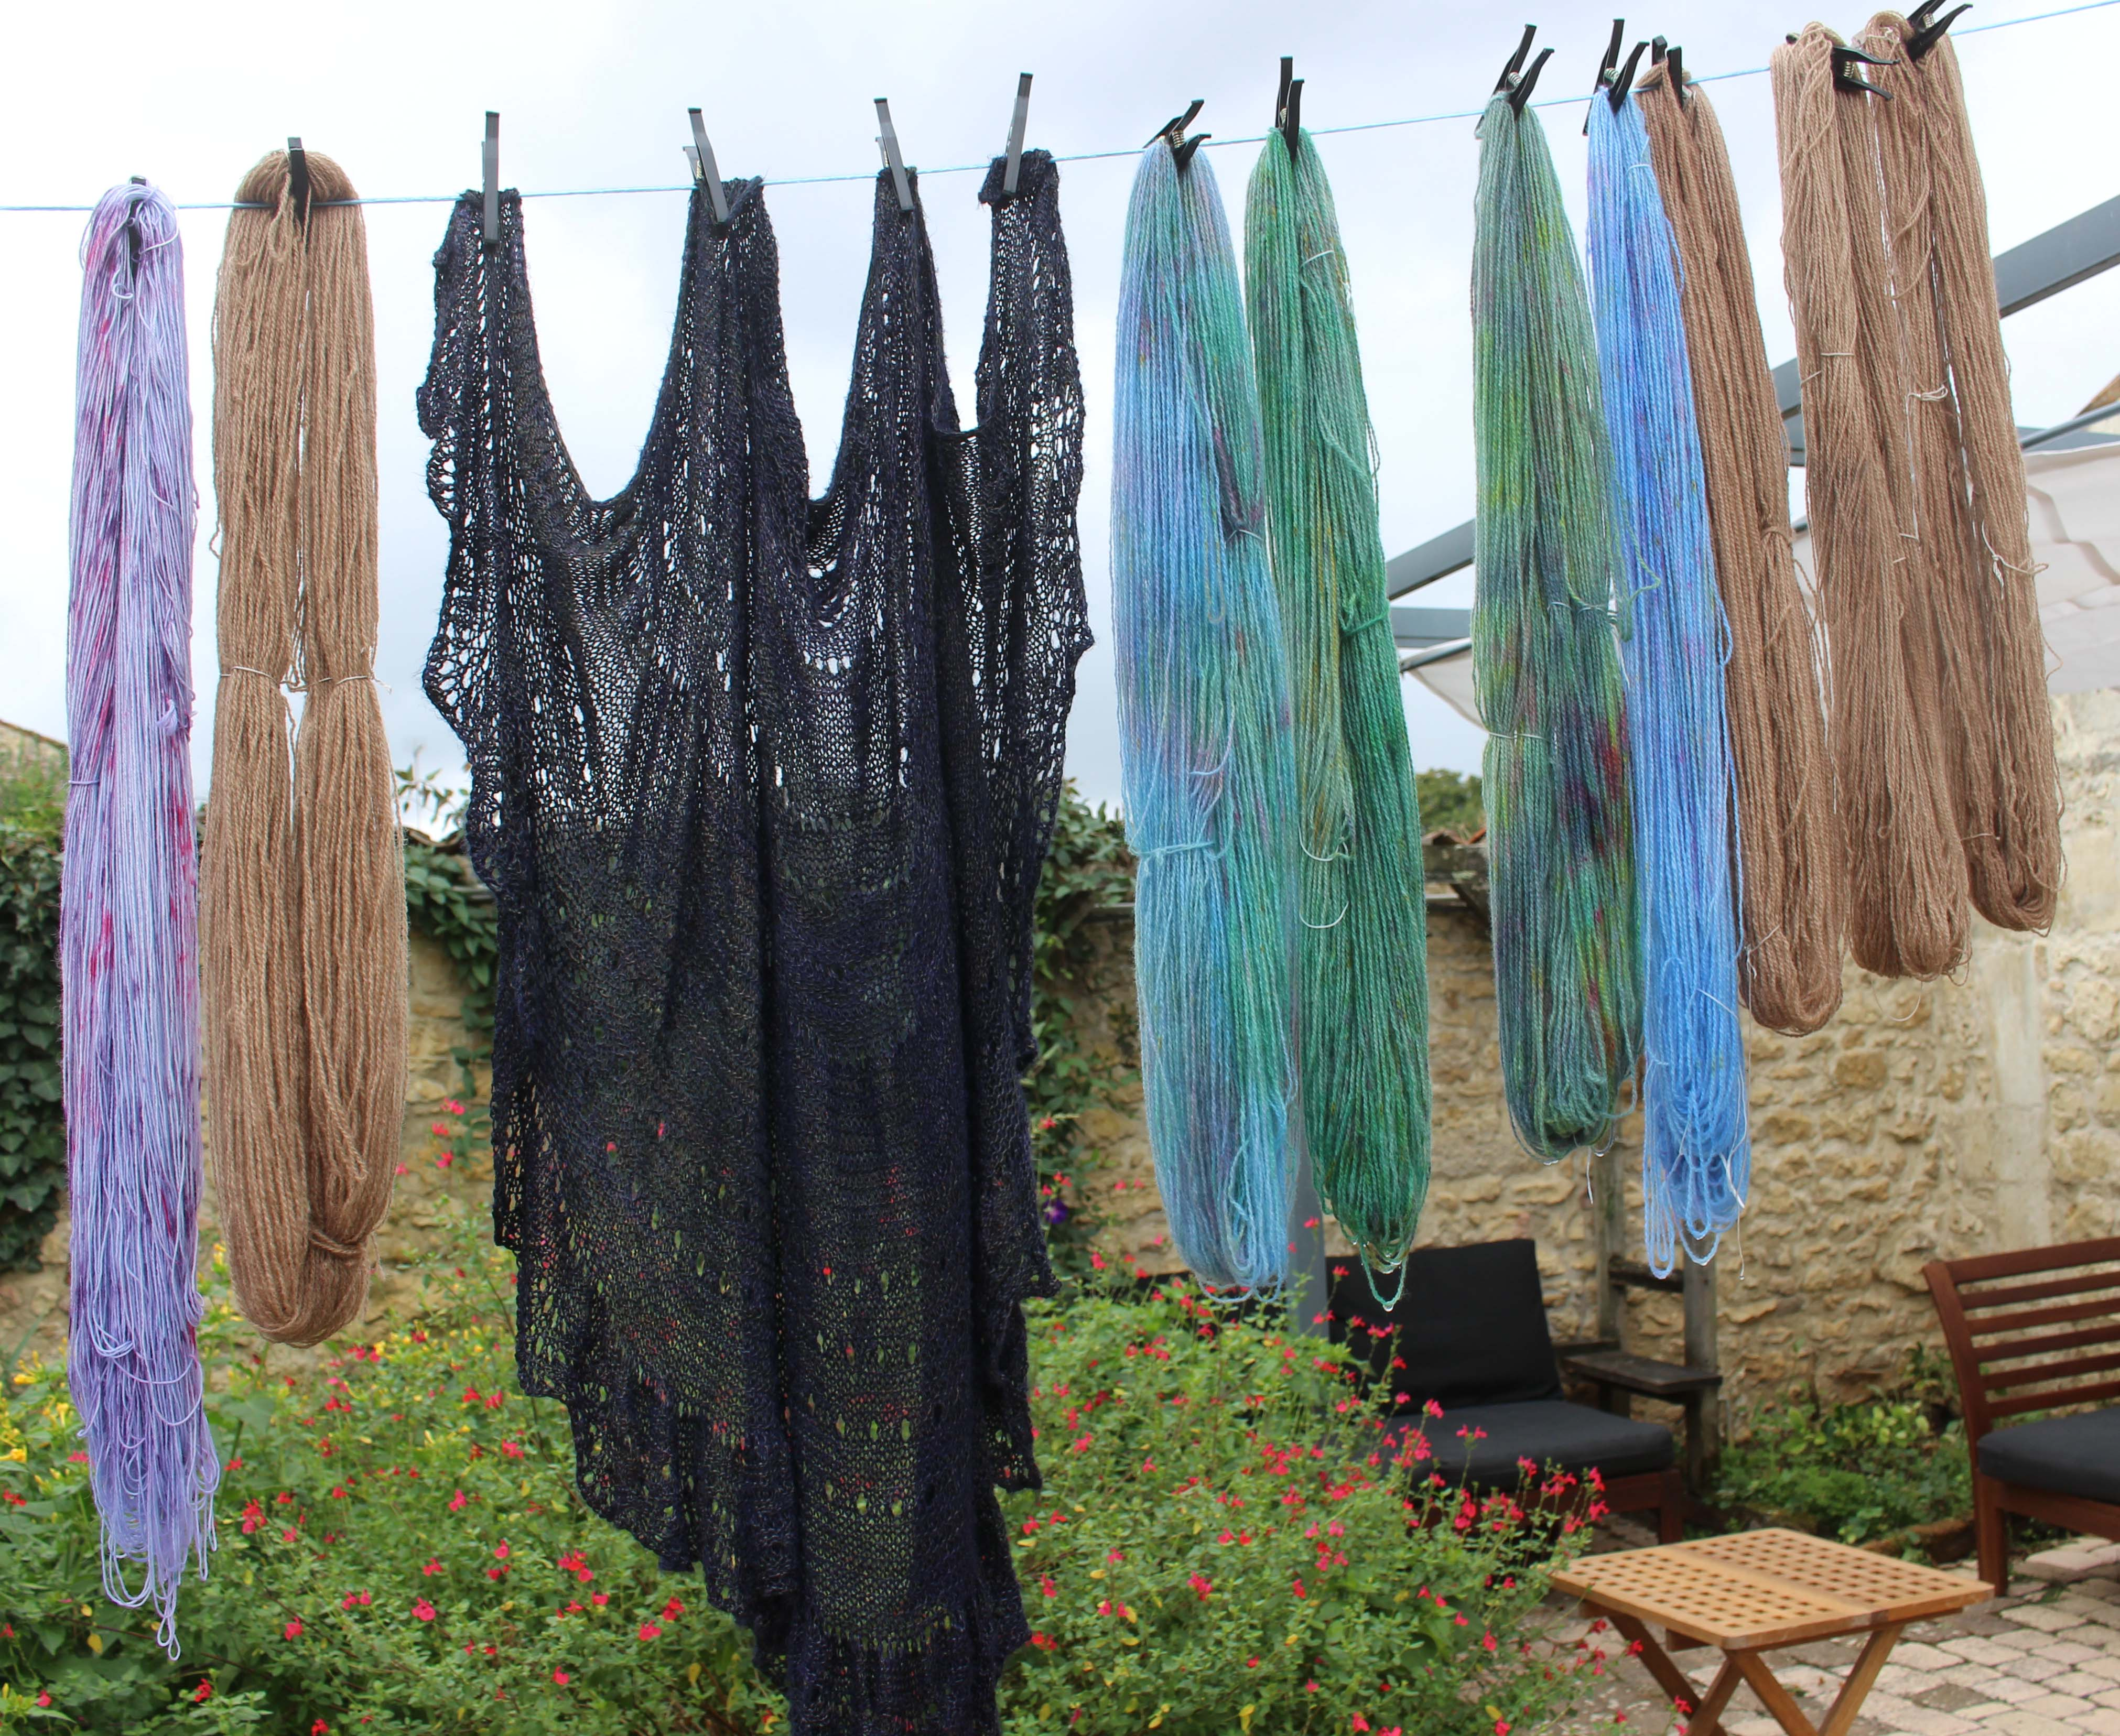 September 2019 knitting retreat - yarn dyeing workshop